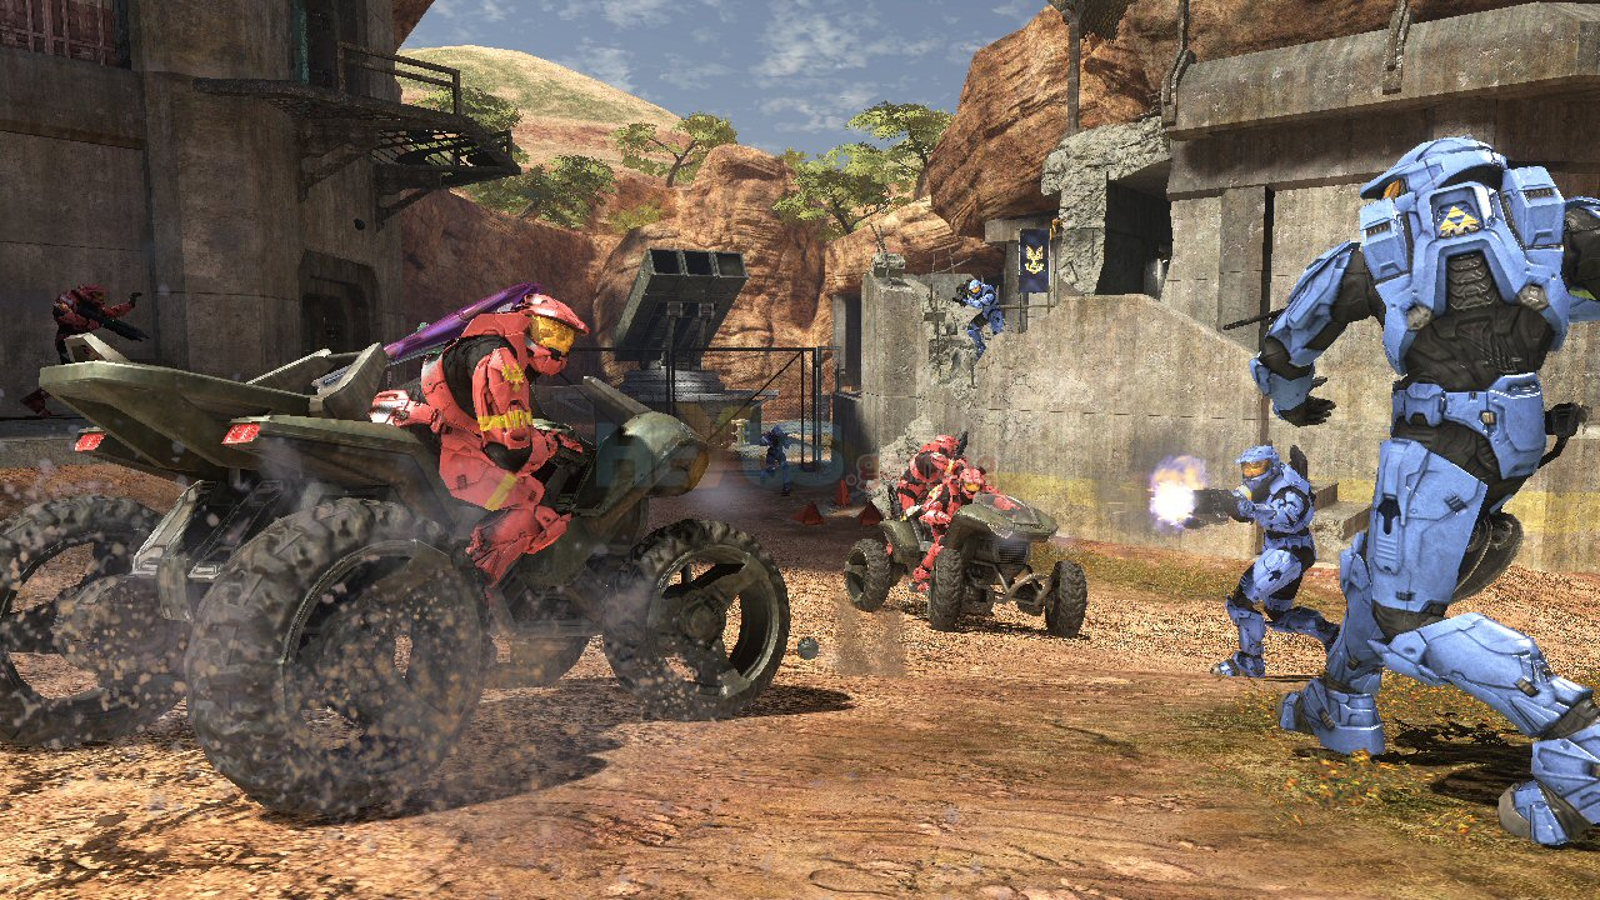 Competitive Halo Goes Old School With The Halo 3 Classic Tournament